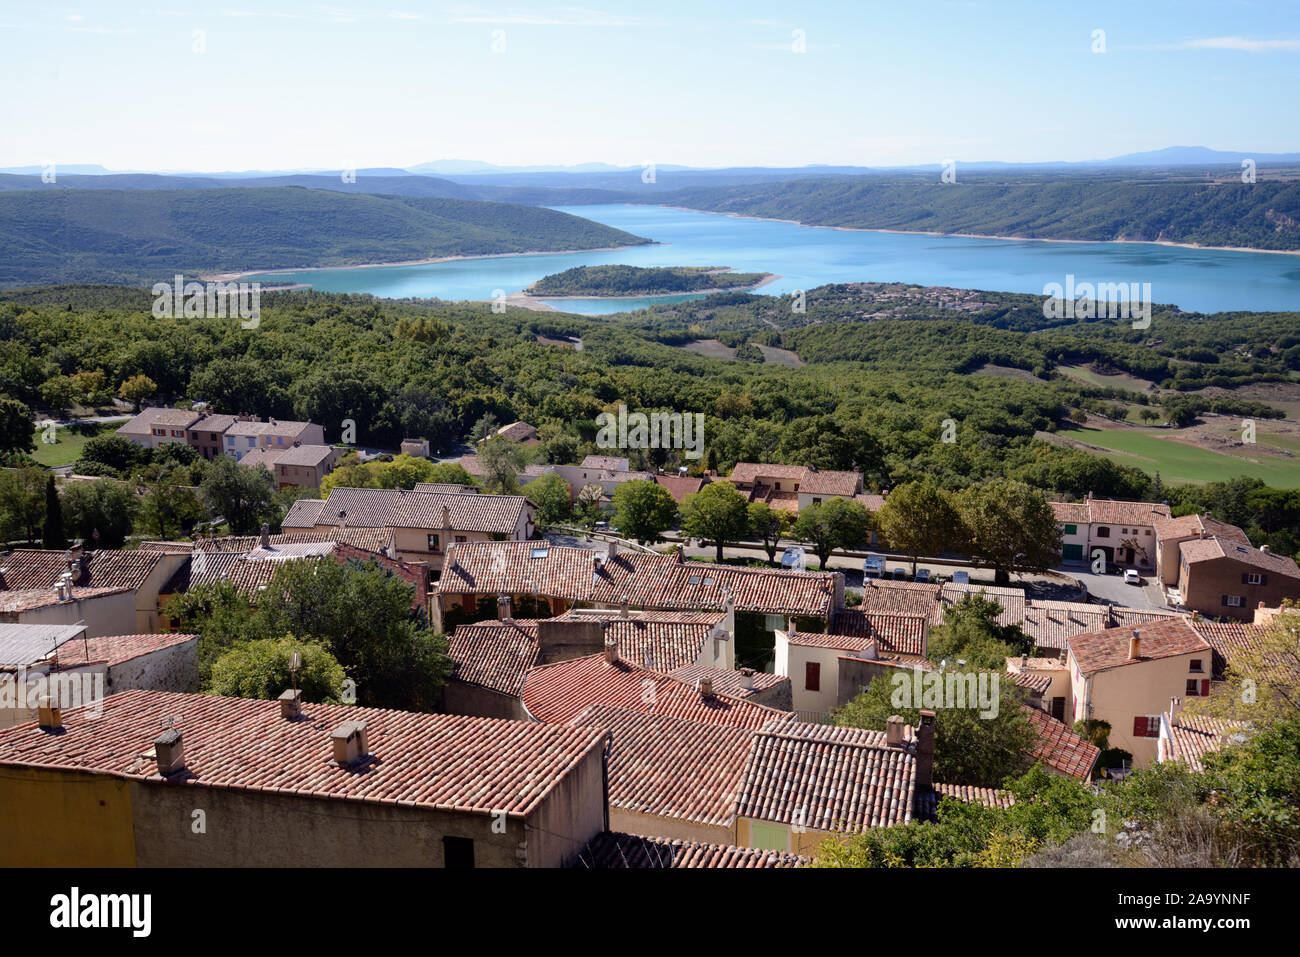 Panoramic View over the Rooftops of the Village of Aiguines & Lac de Sainte-Croix or Lake of Sainte-Croix Var Provence France Stock Photo